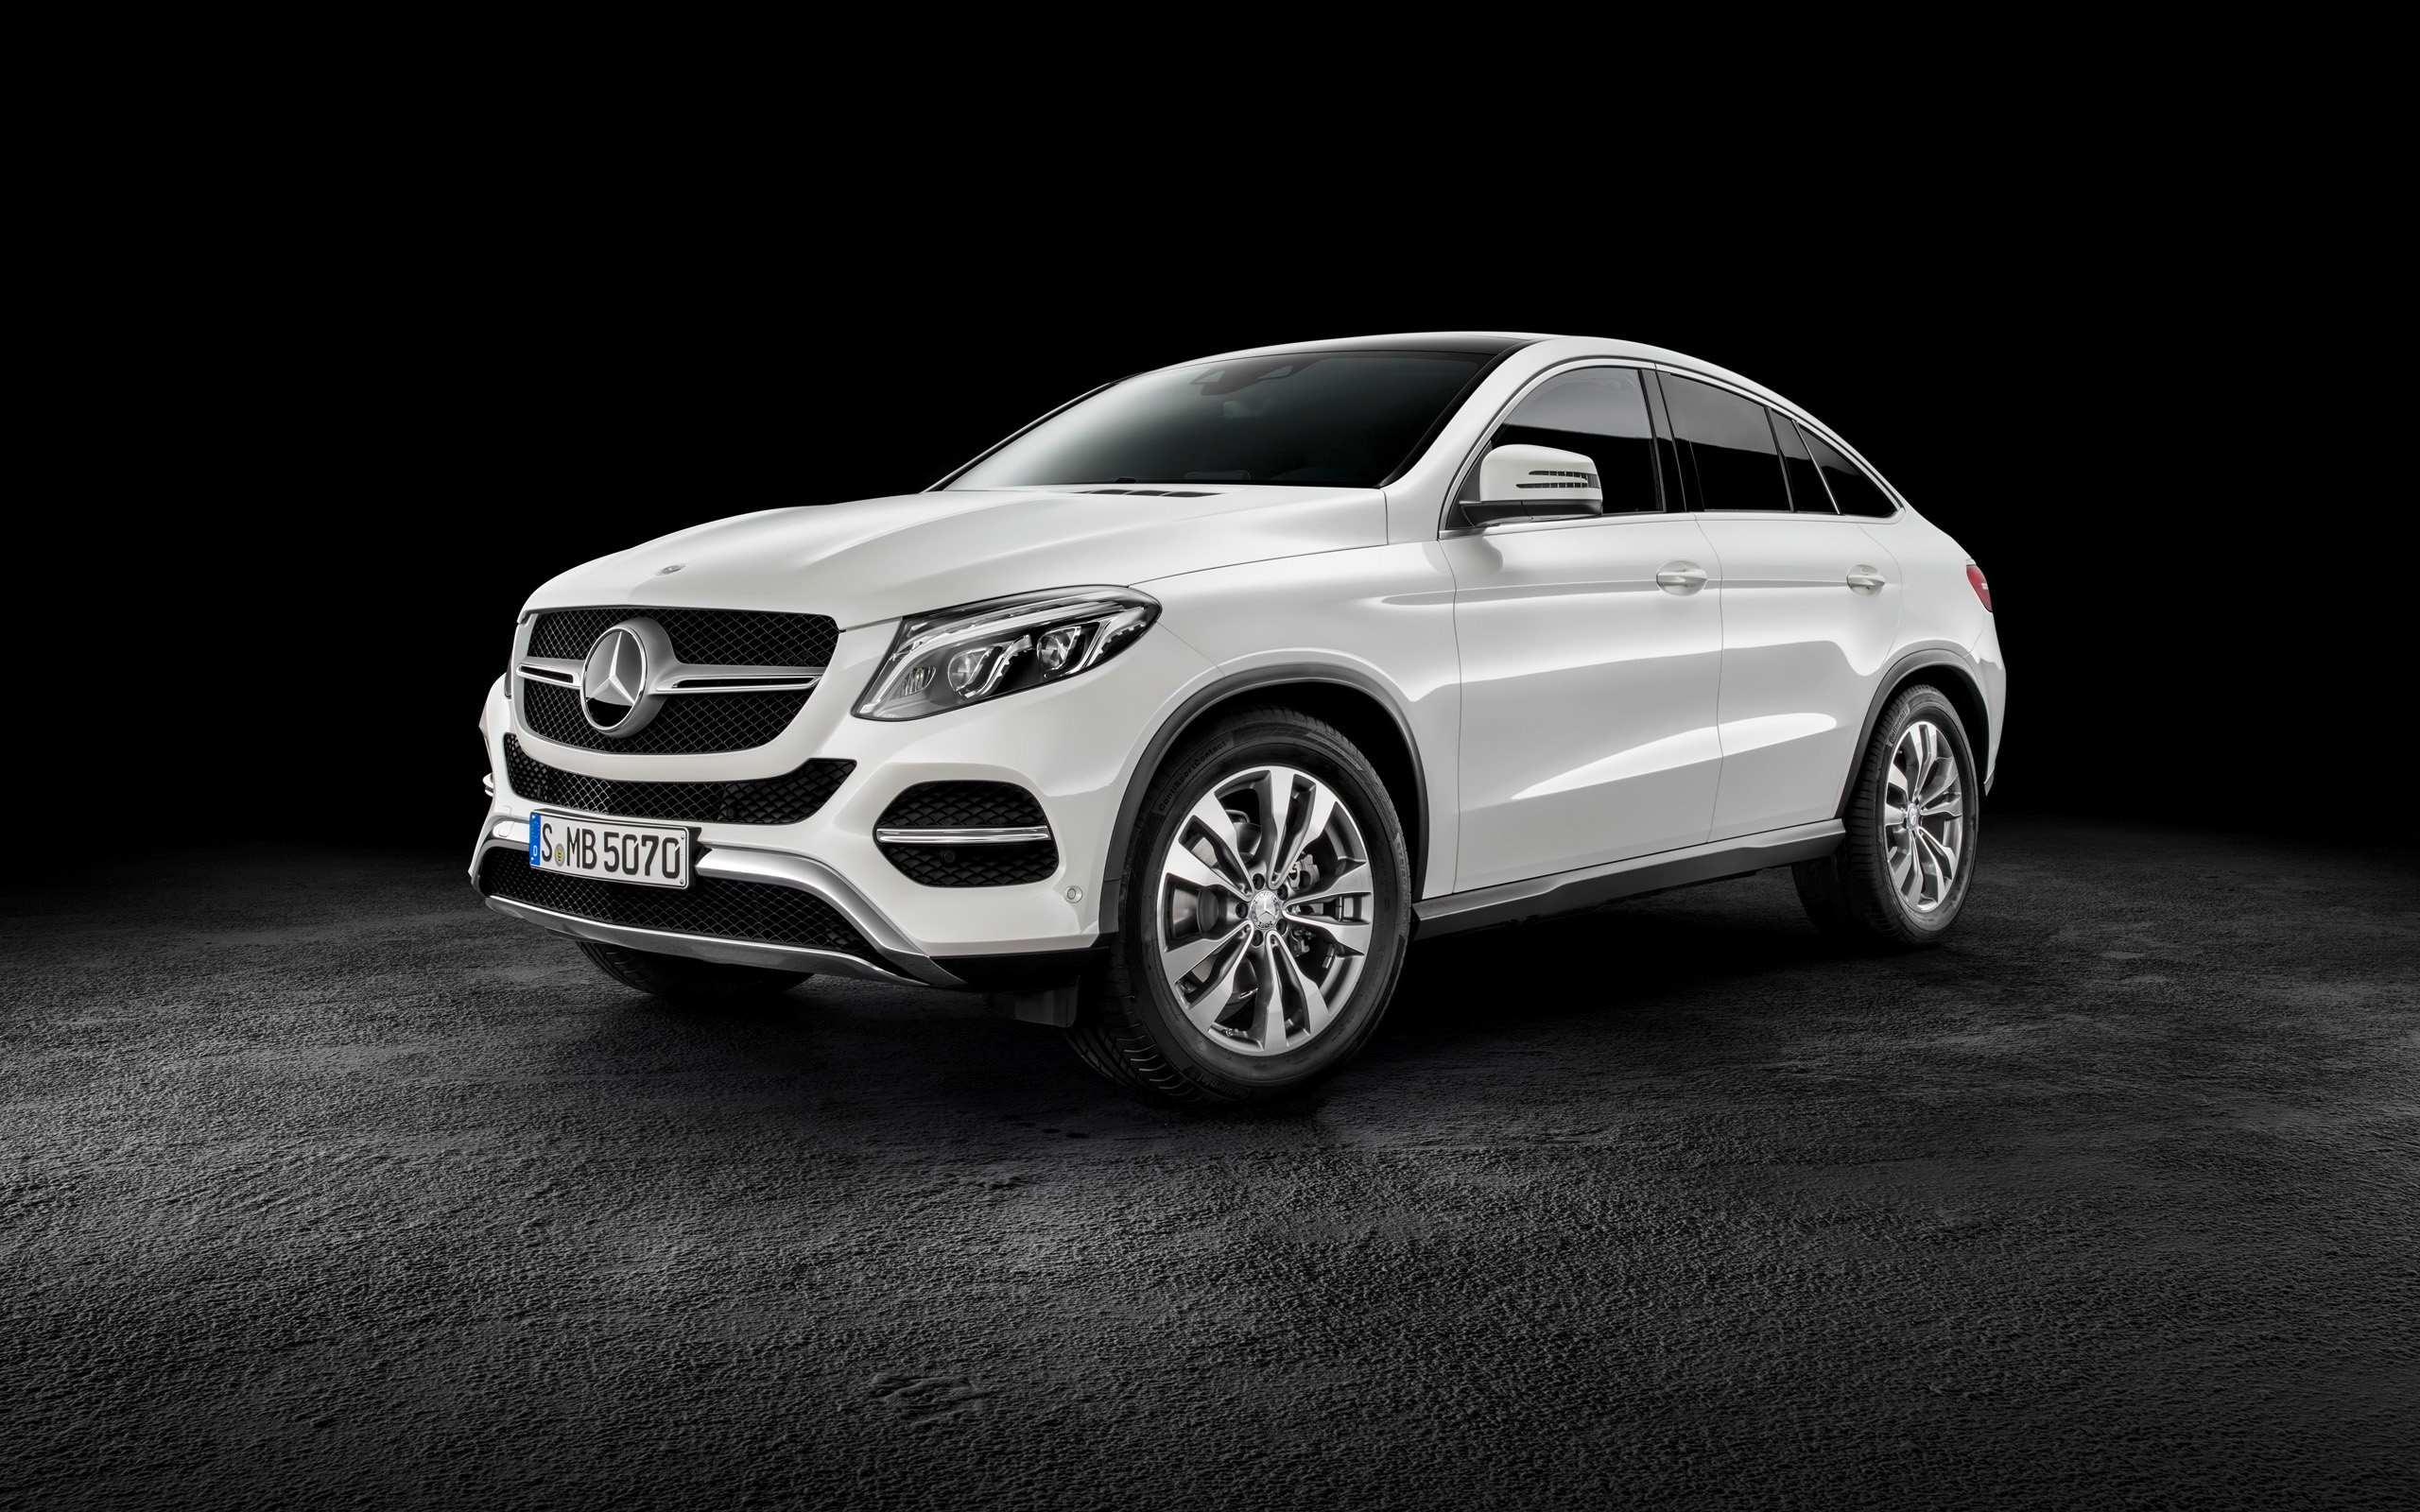 2015 Mercedes Benz Gle Coupe Wallpaper Hd Car Wallpapers Id 5008